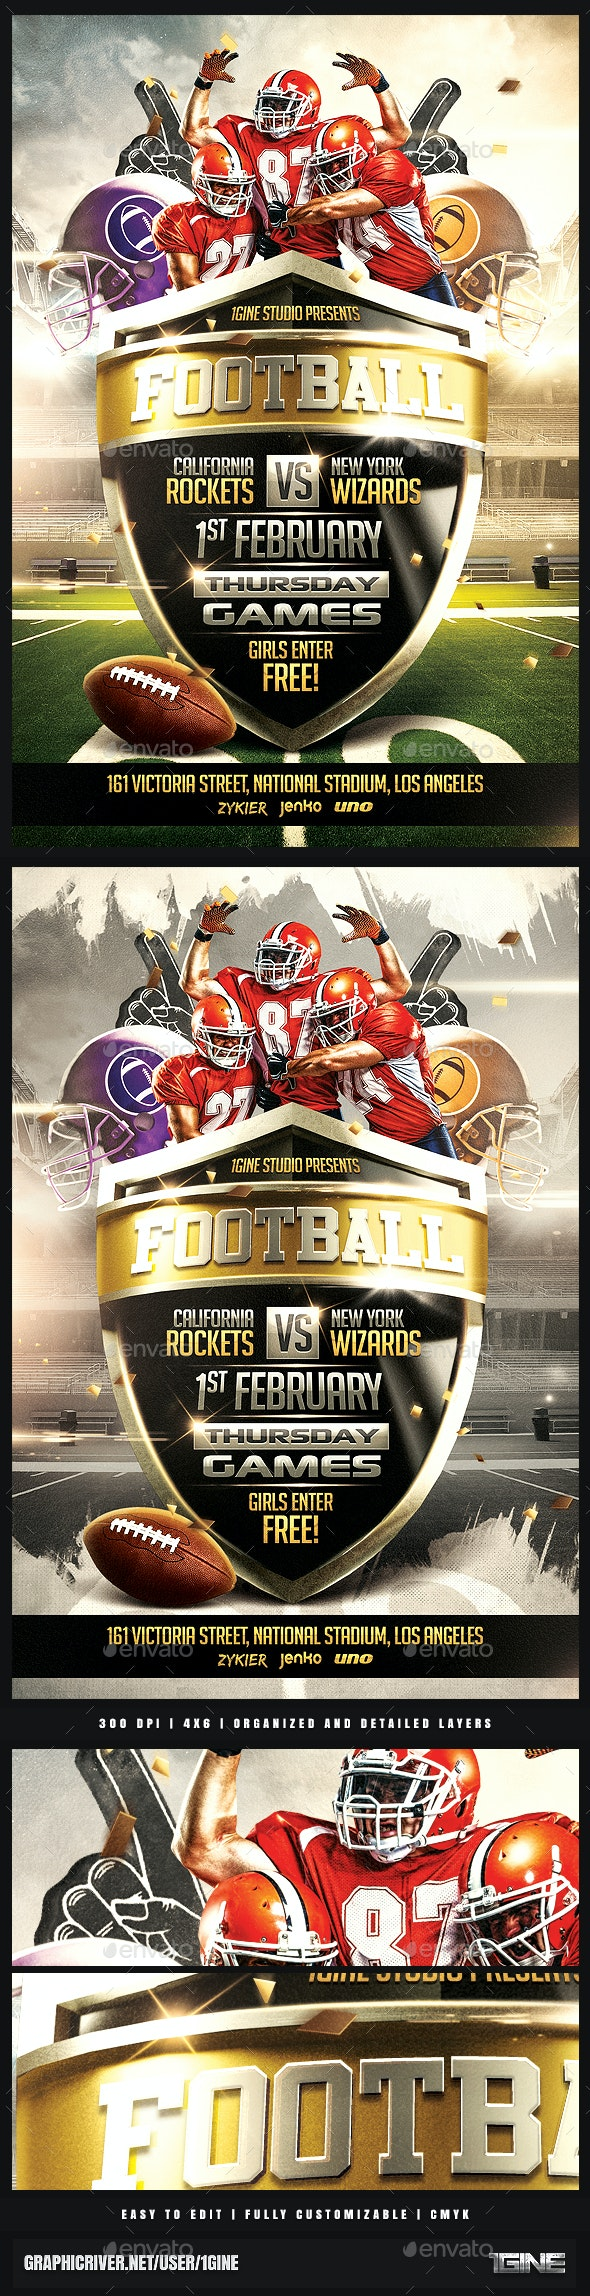 Football Night Flyer Template v2 - Sports Events